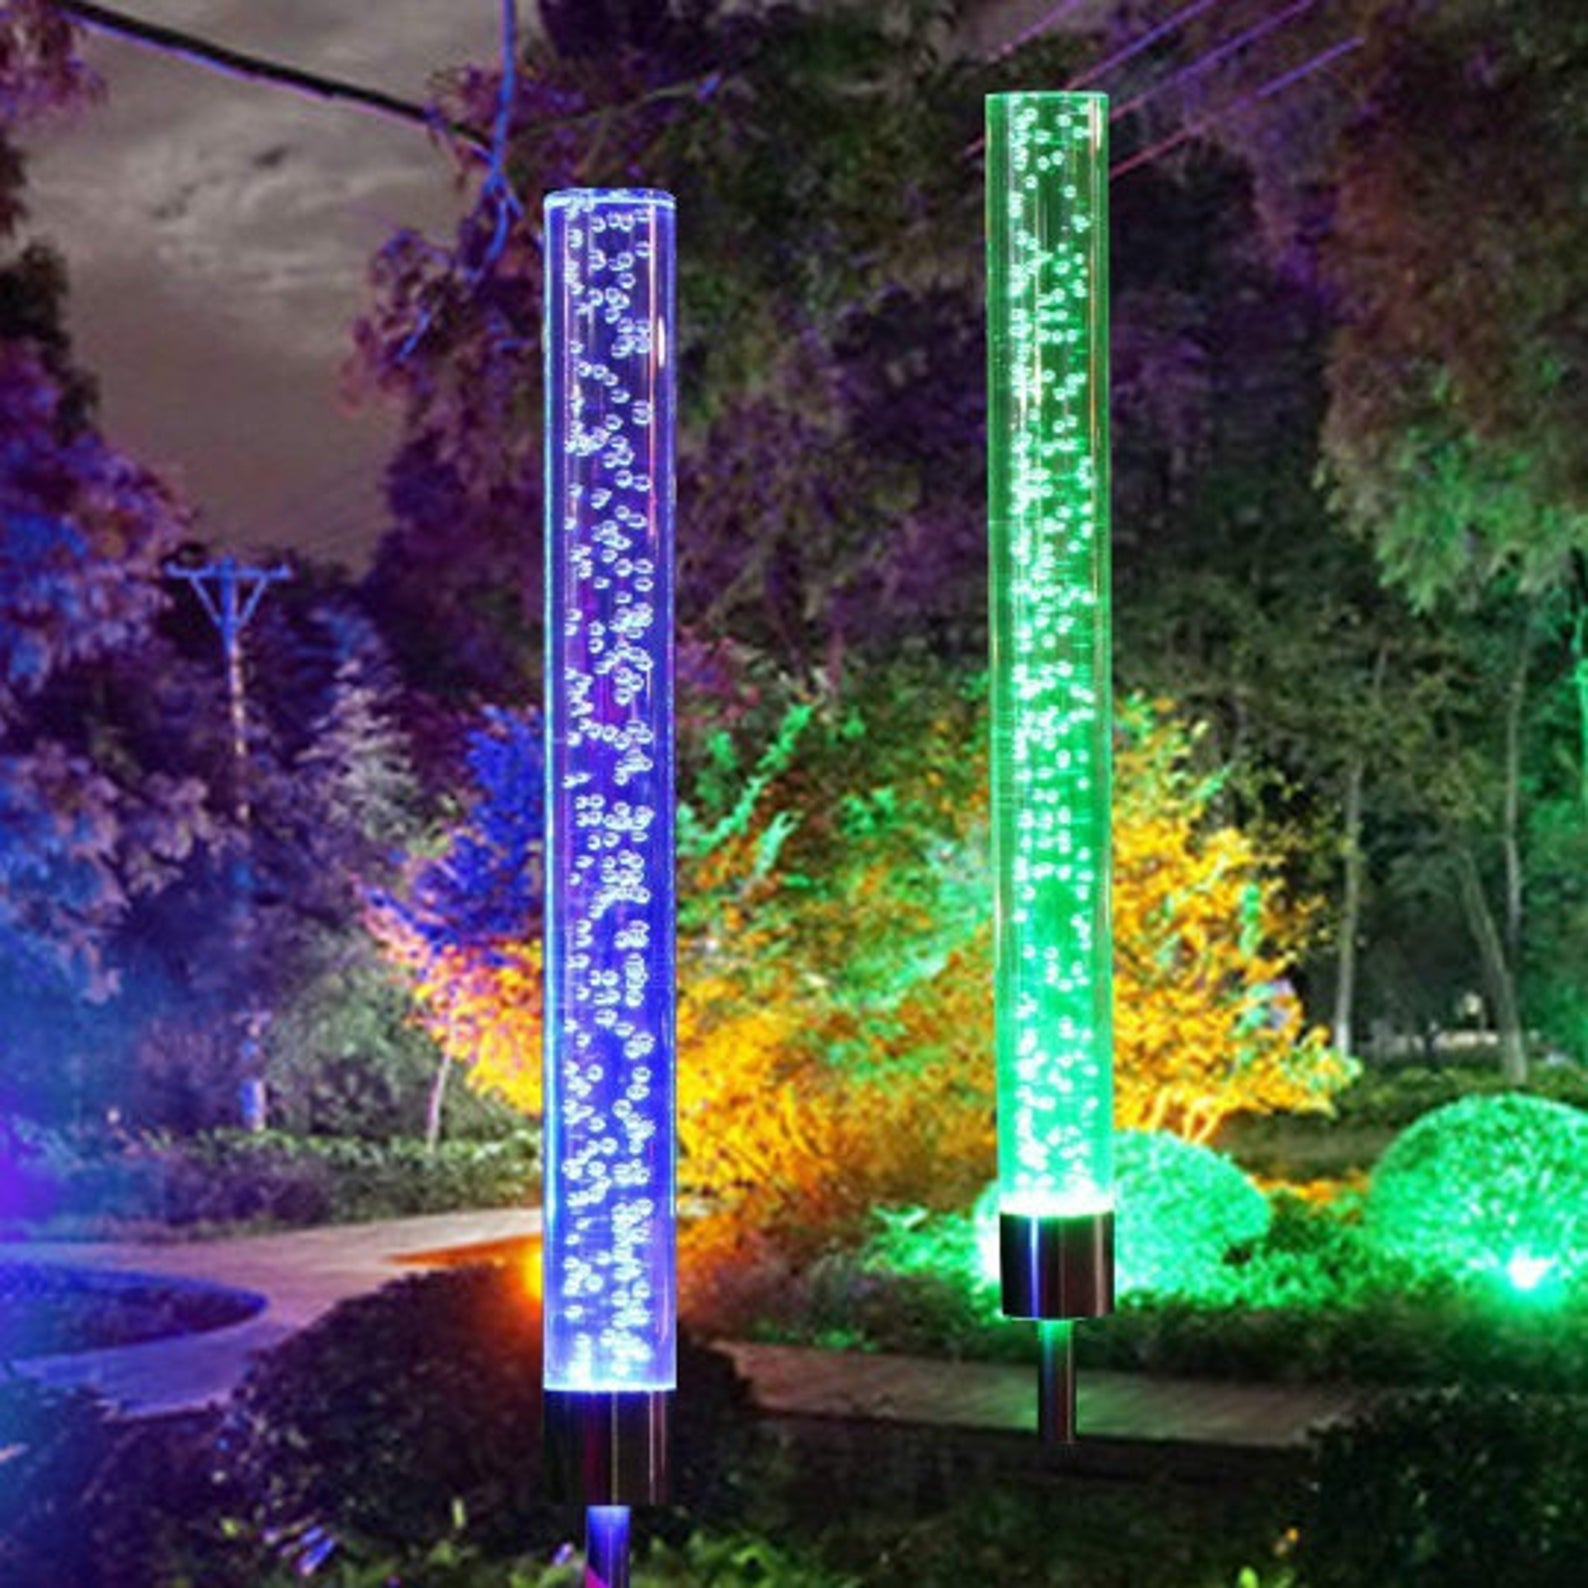 Solar powered bubble lights in different colors lighting up a pathway